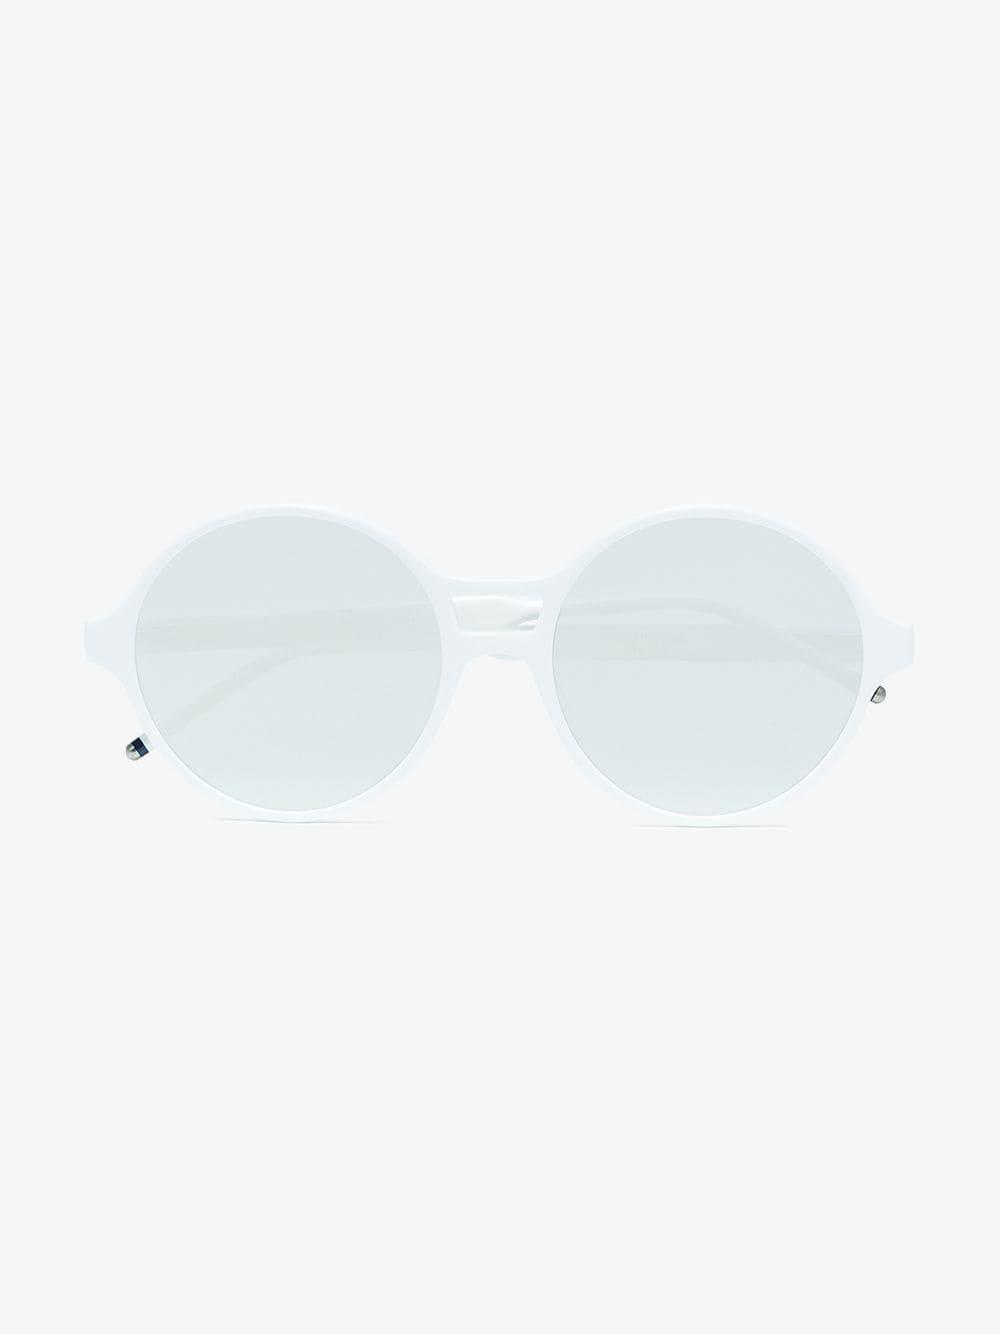 258232a72593c Thom Browne White Round Frame Mirror Sunglasses in White for Men - Lyst